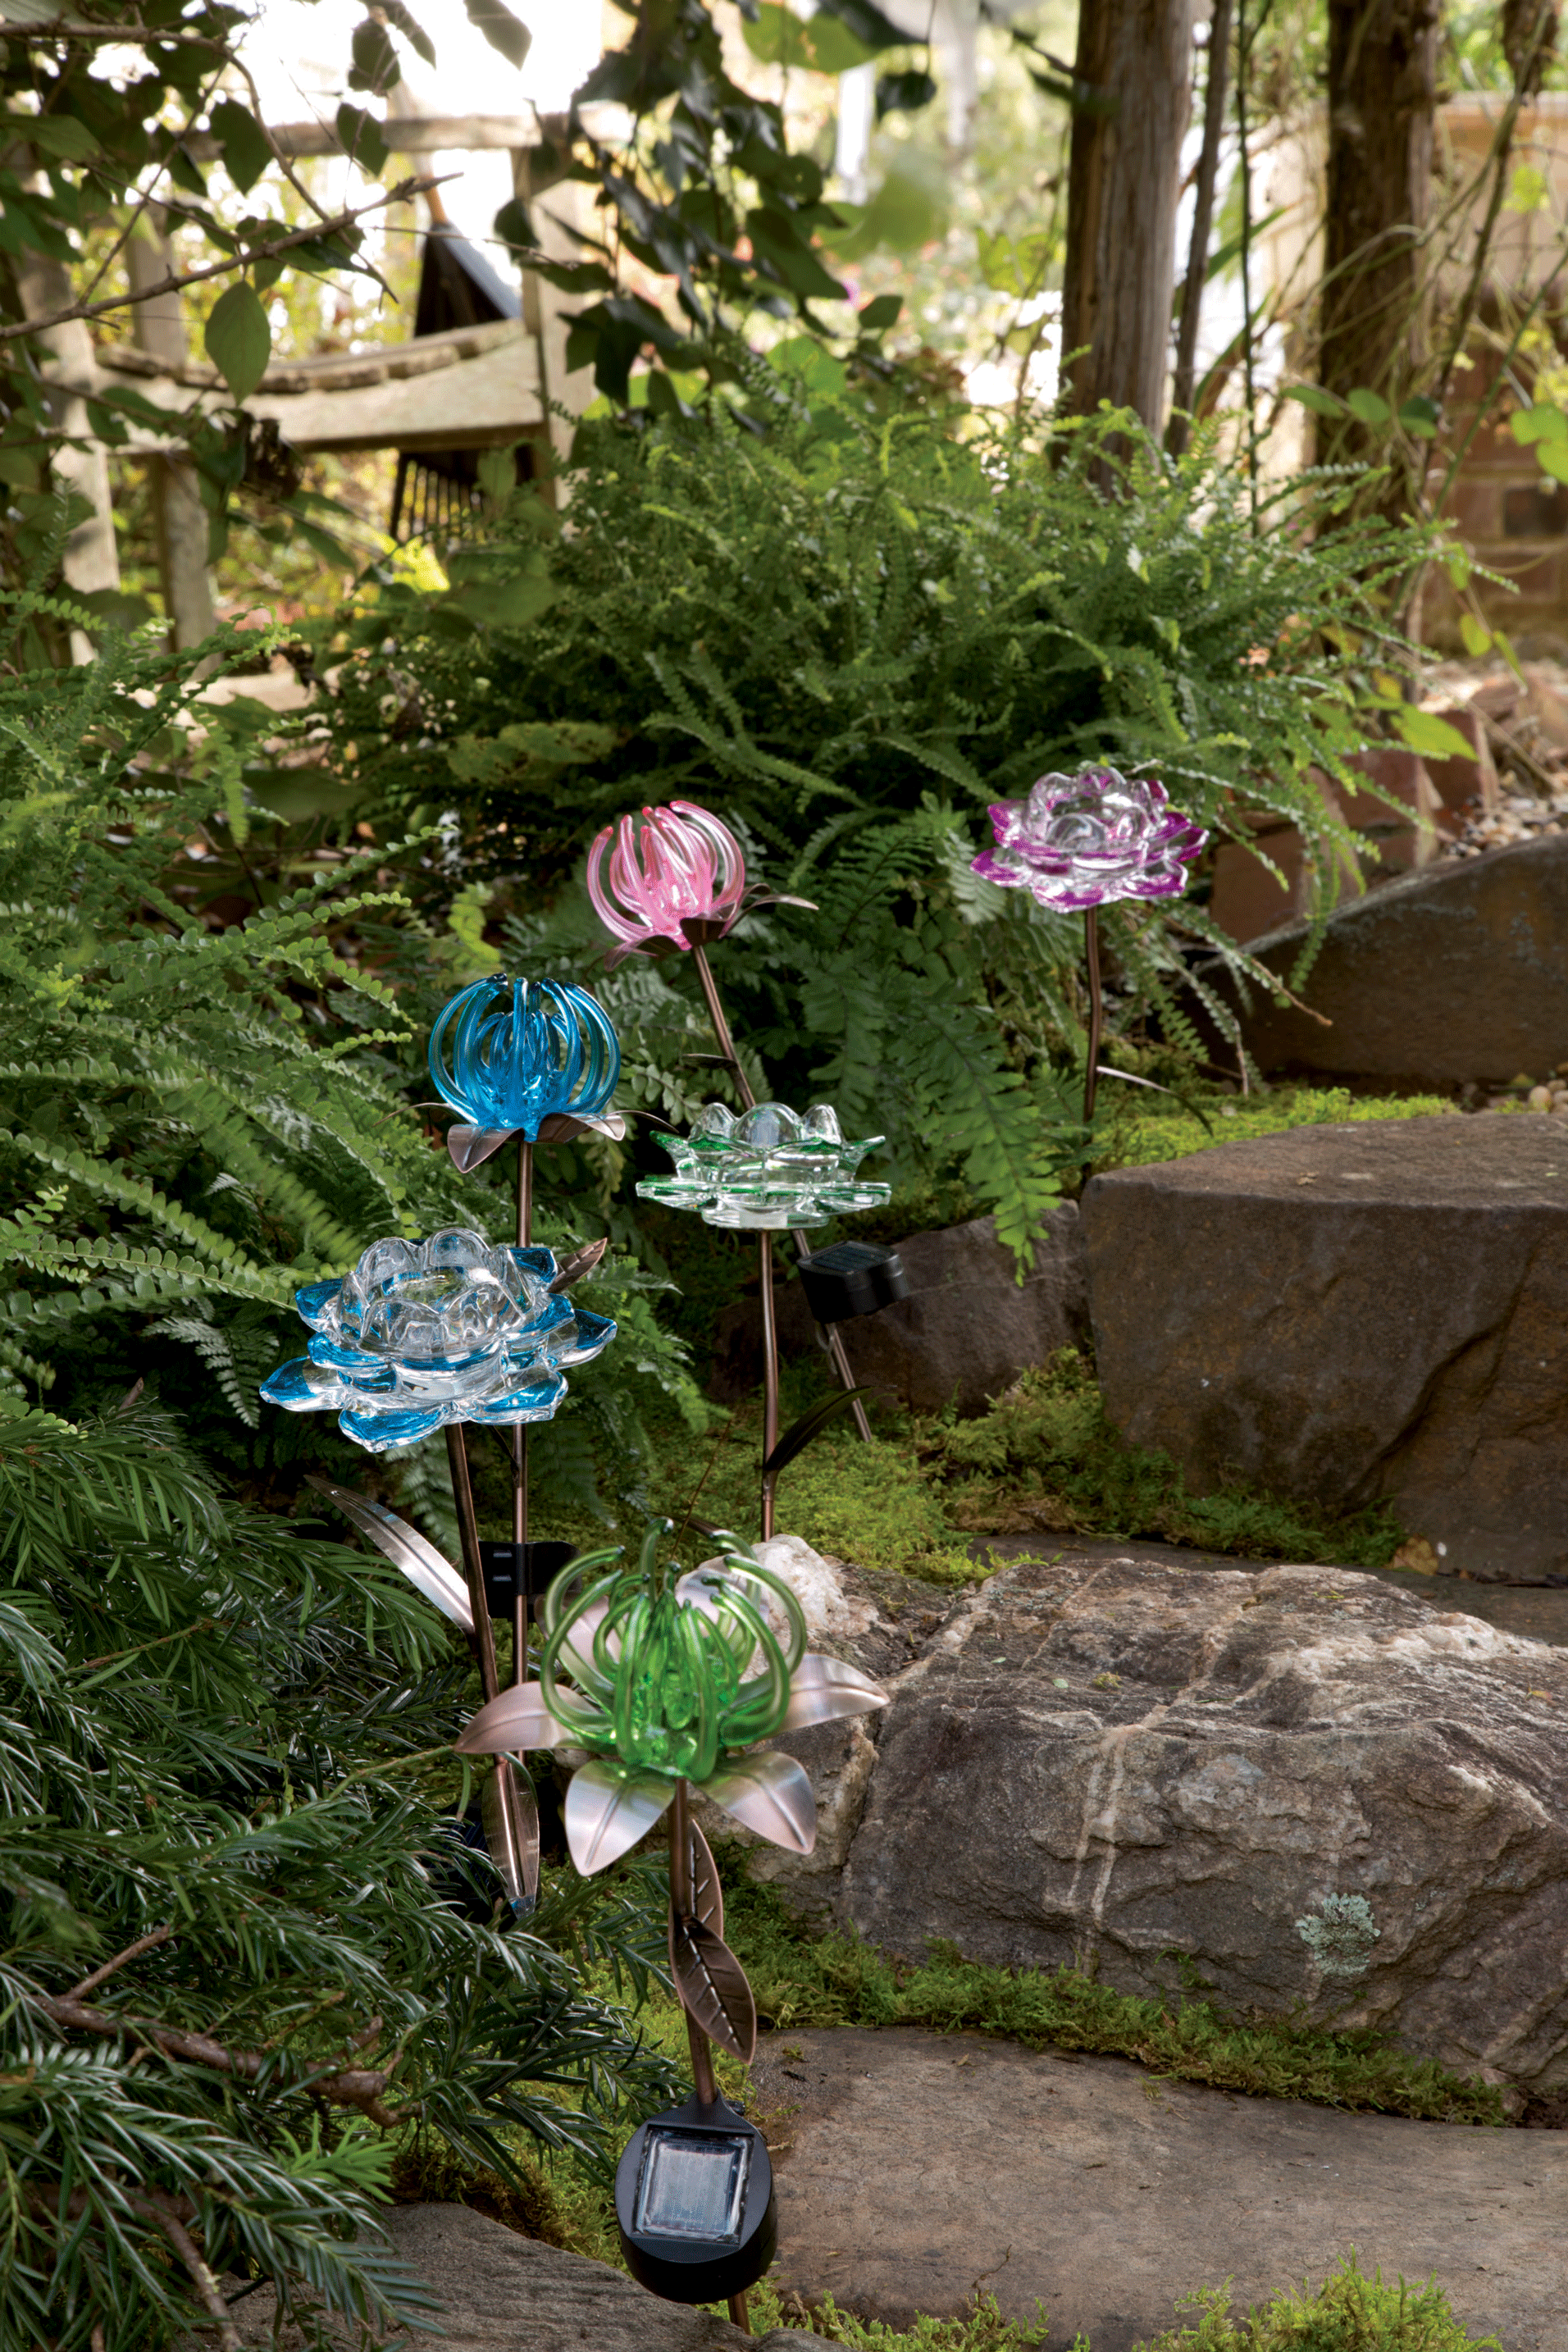 3 Ways To Save Energy And Add Whimsy In Your Garden With